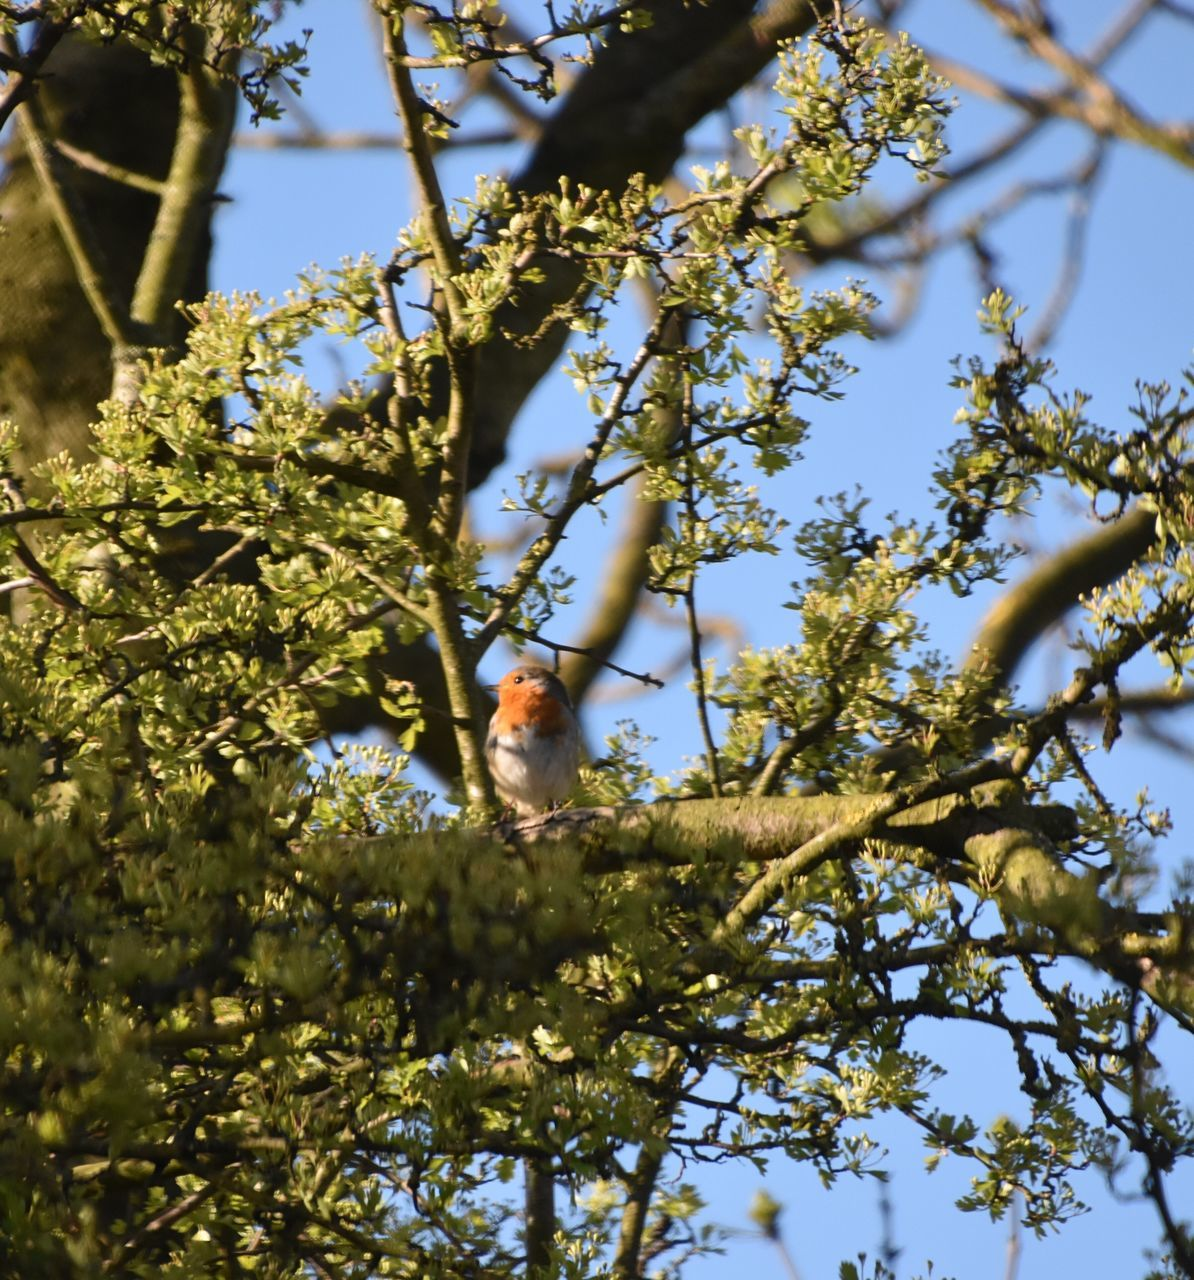 tree, one animal, low angle view, branch, animals in the wild, animal themes, nature, no people, day, bird, animal wildlife, outdoors, growth, beauty in nature, perching, sky